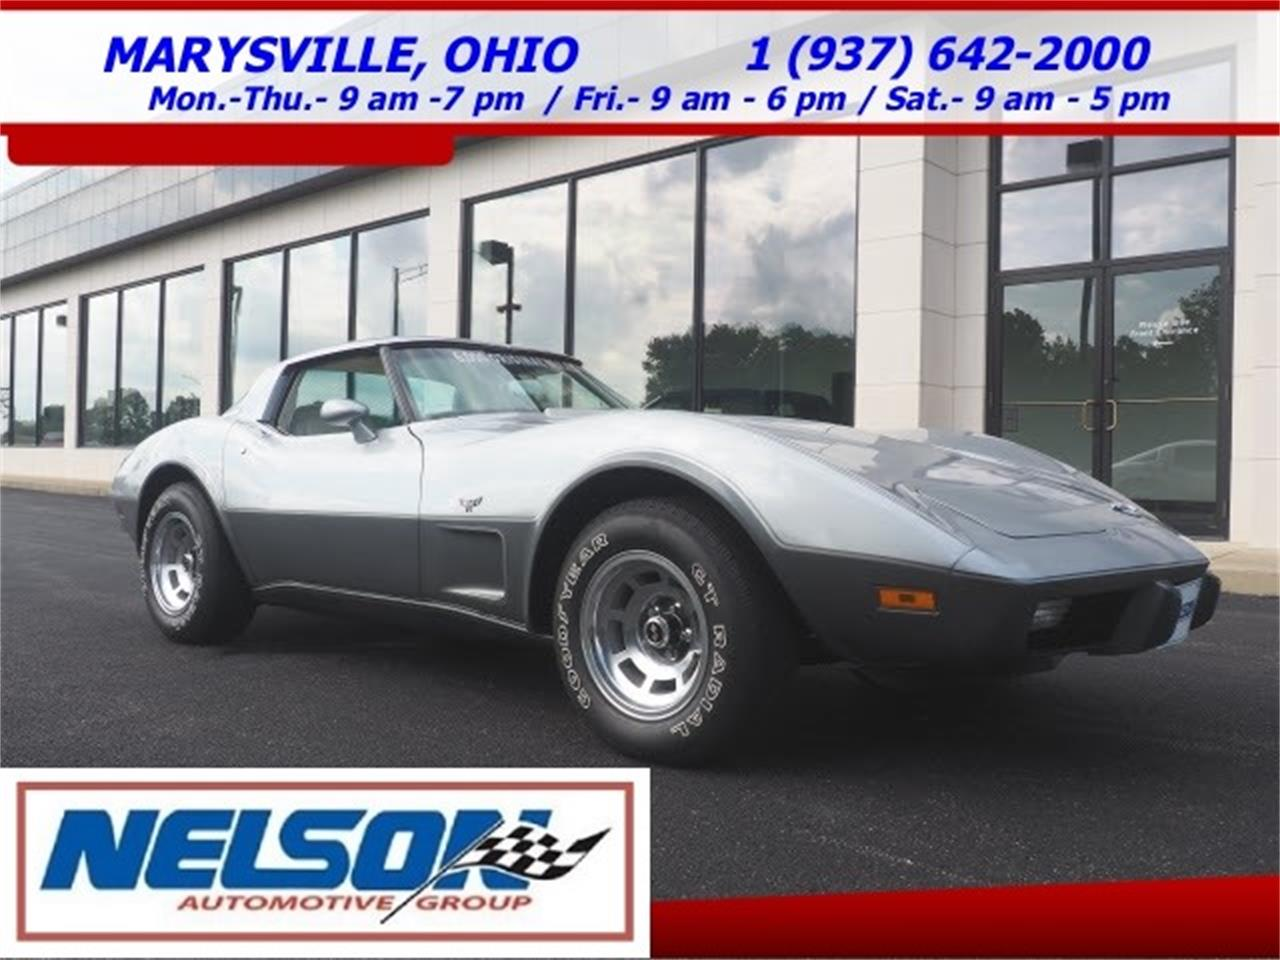 Large Picture of 1978 Corvette - $22,999.00 Offered by Nelson Automotive, Ltd. - NMOD